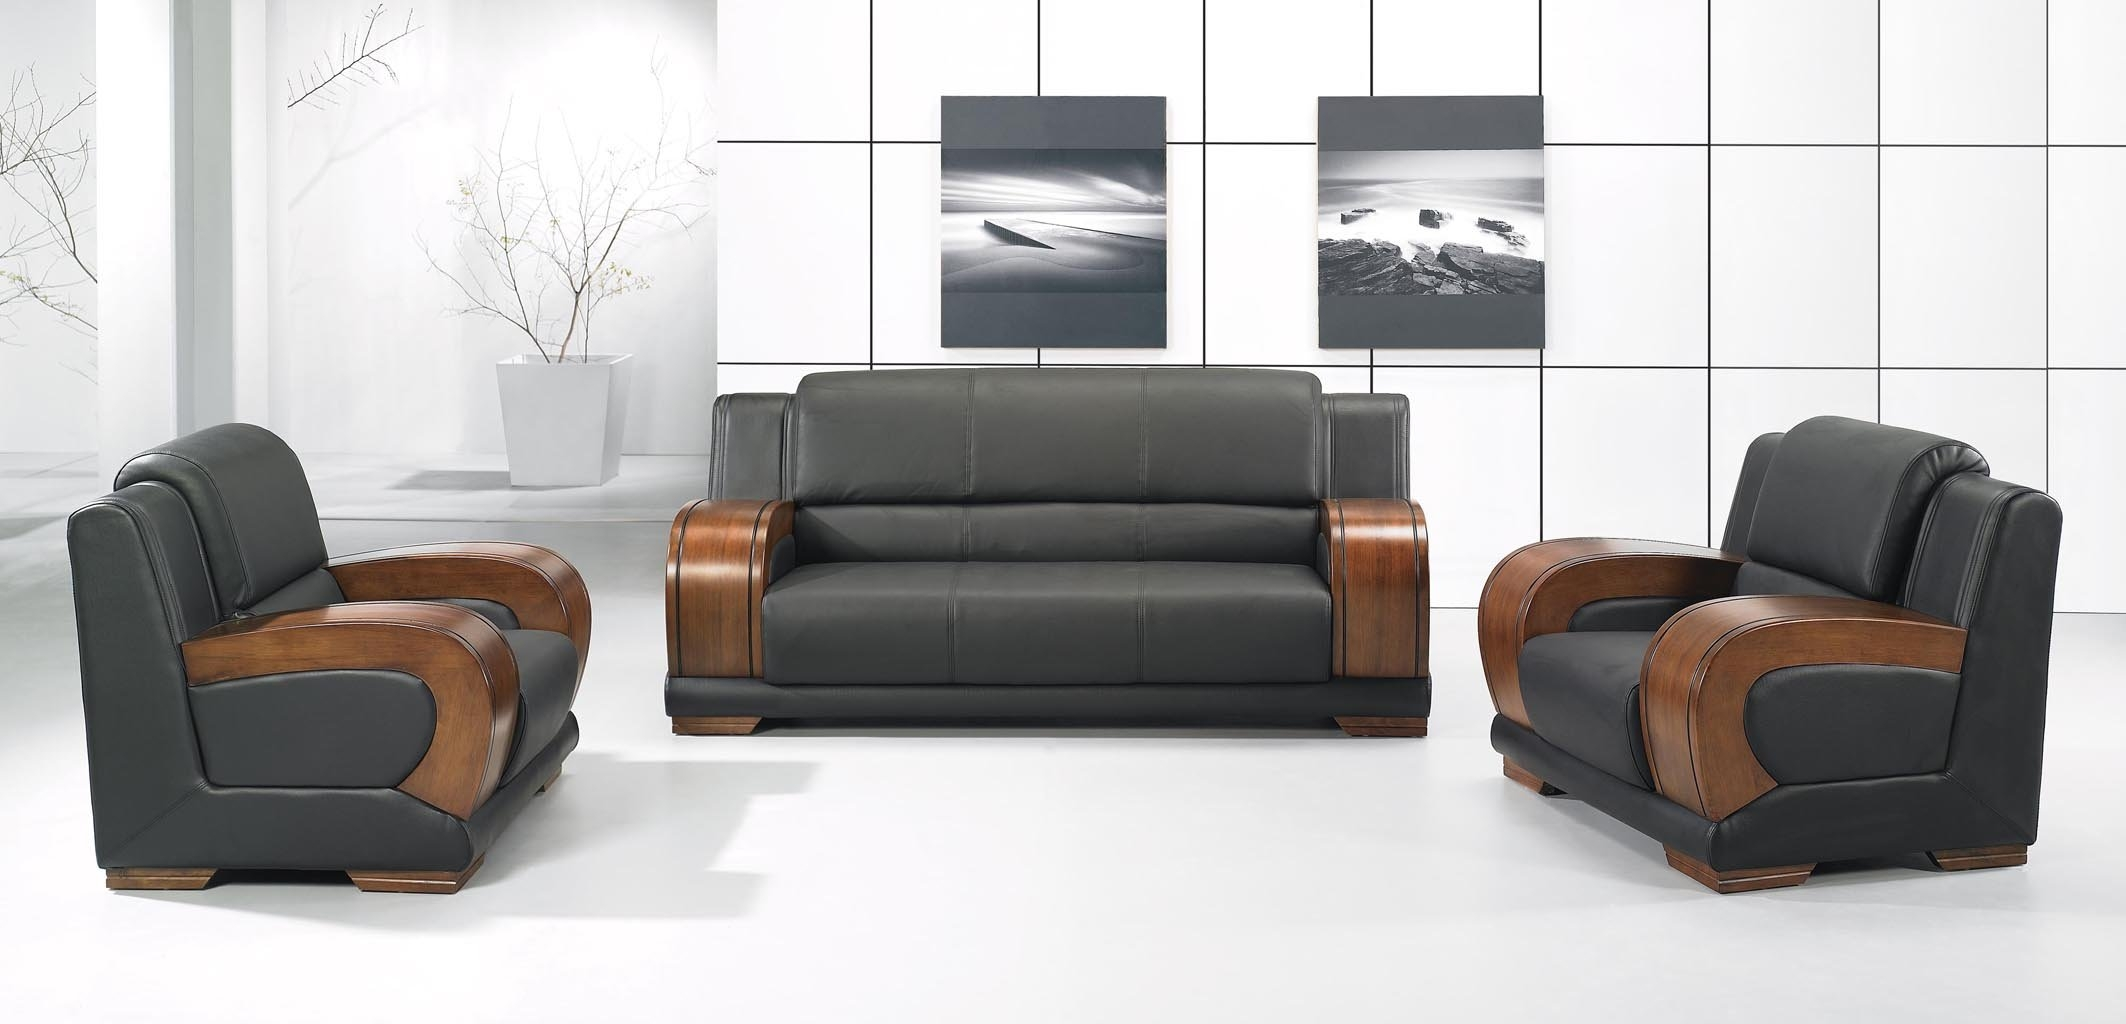 Chair Office Sofa Chair Popular Leather Office Sofa Buy Cheap With Cheap Sofa Chairs (Image 4 of 15)